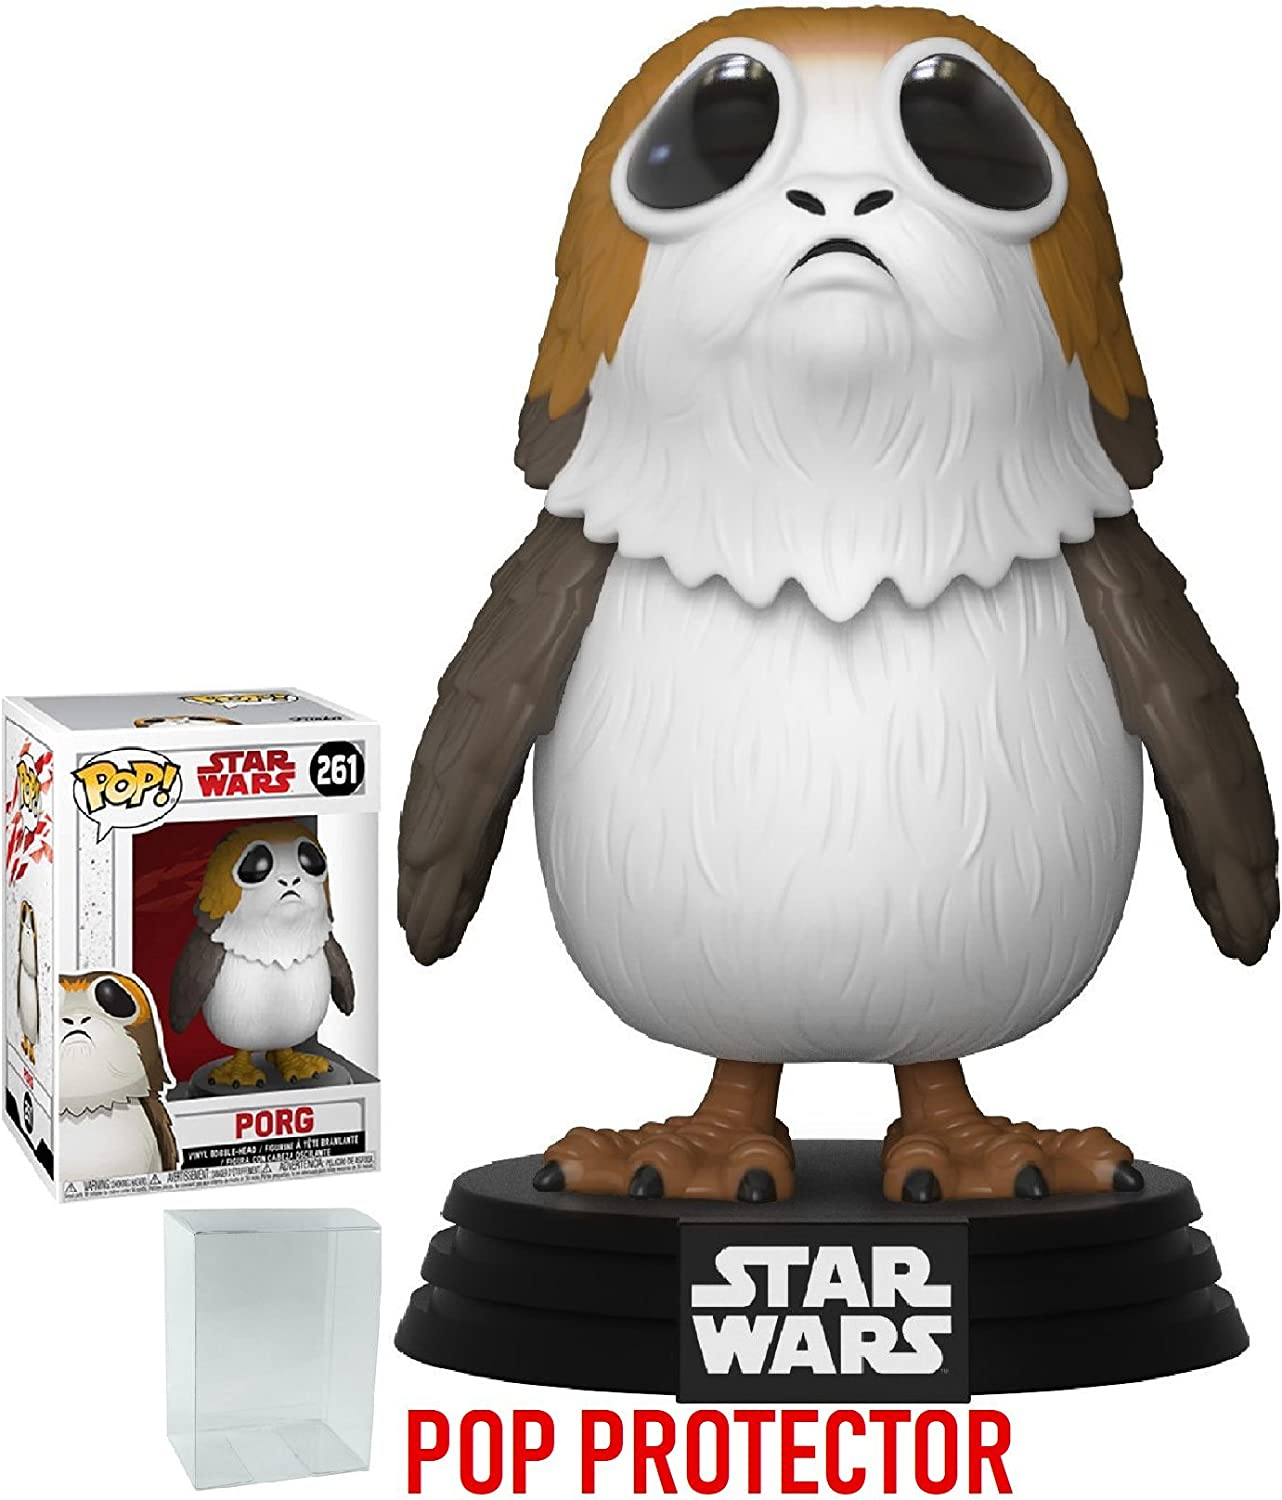 Amazon Com Funko Pop Star Wars The Last Jedi Sad Porg 261 Vinyl Figure Bundled With Pop Box Protector Case Toys Games